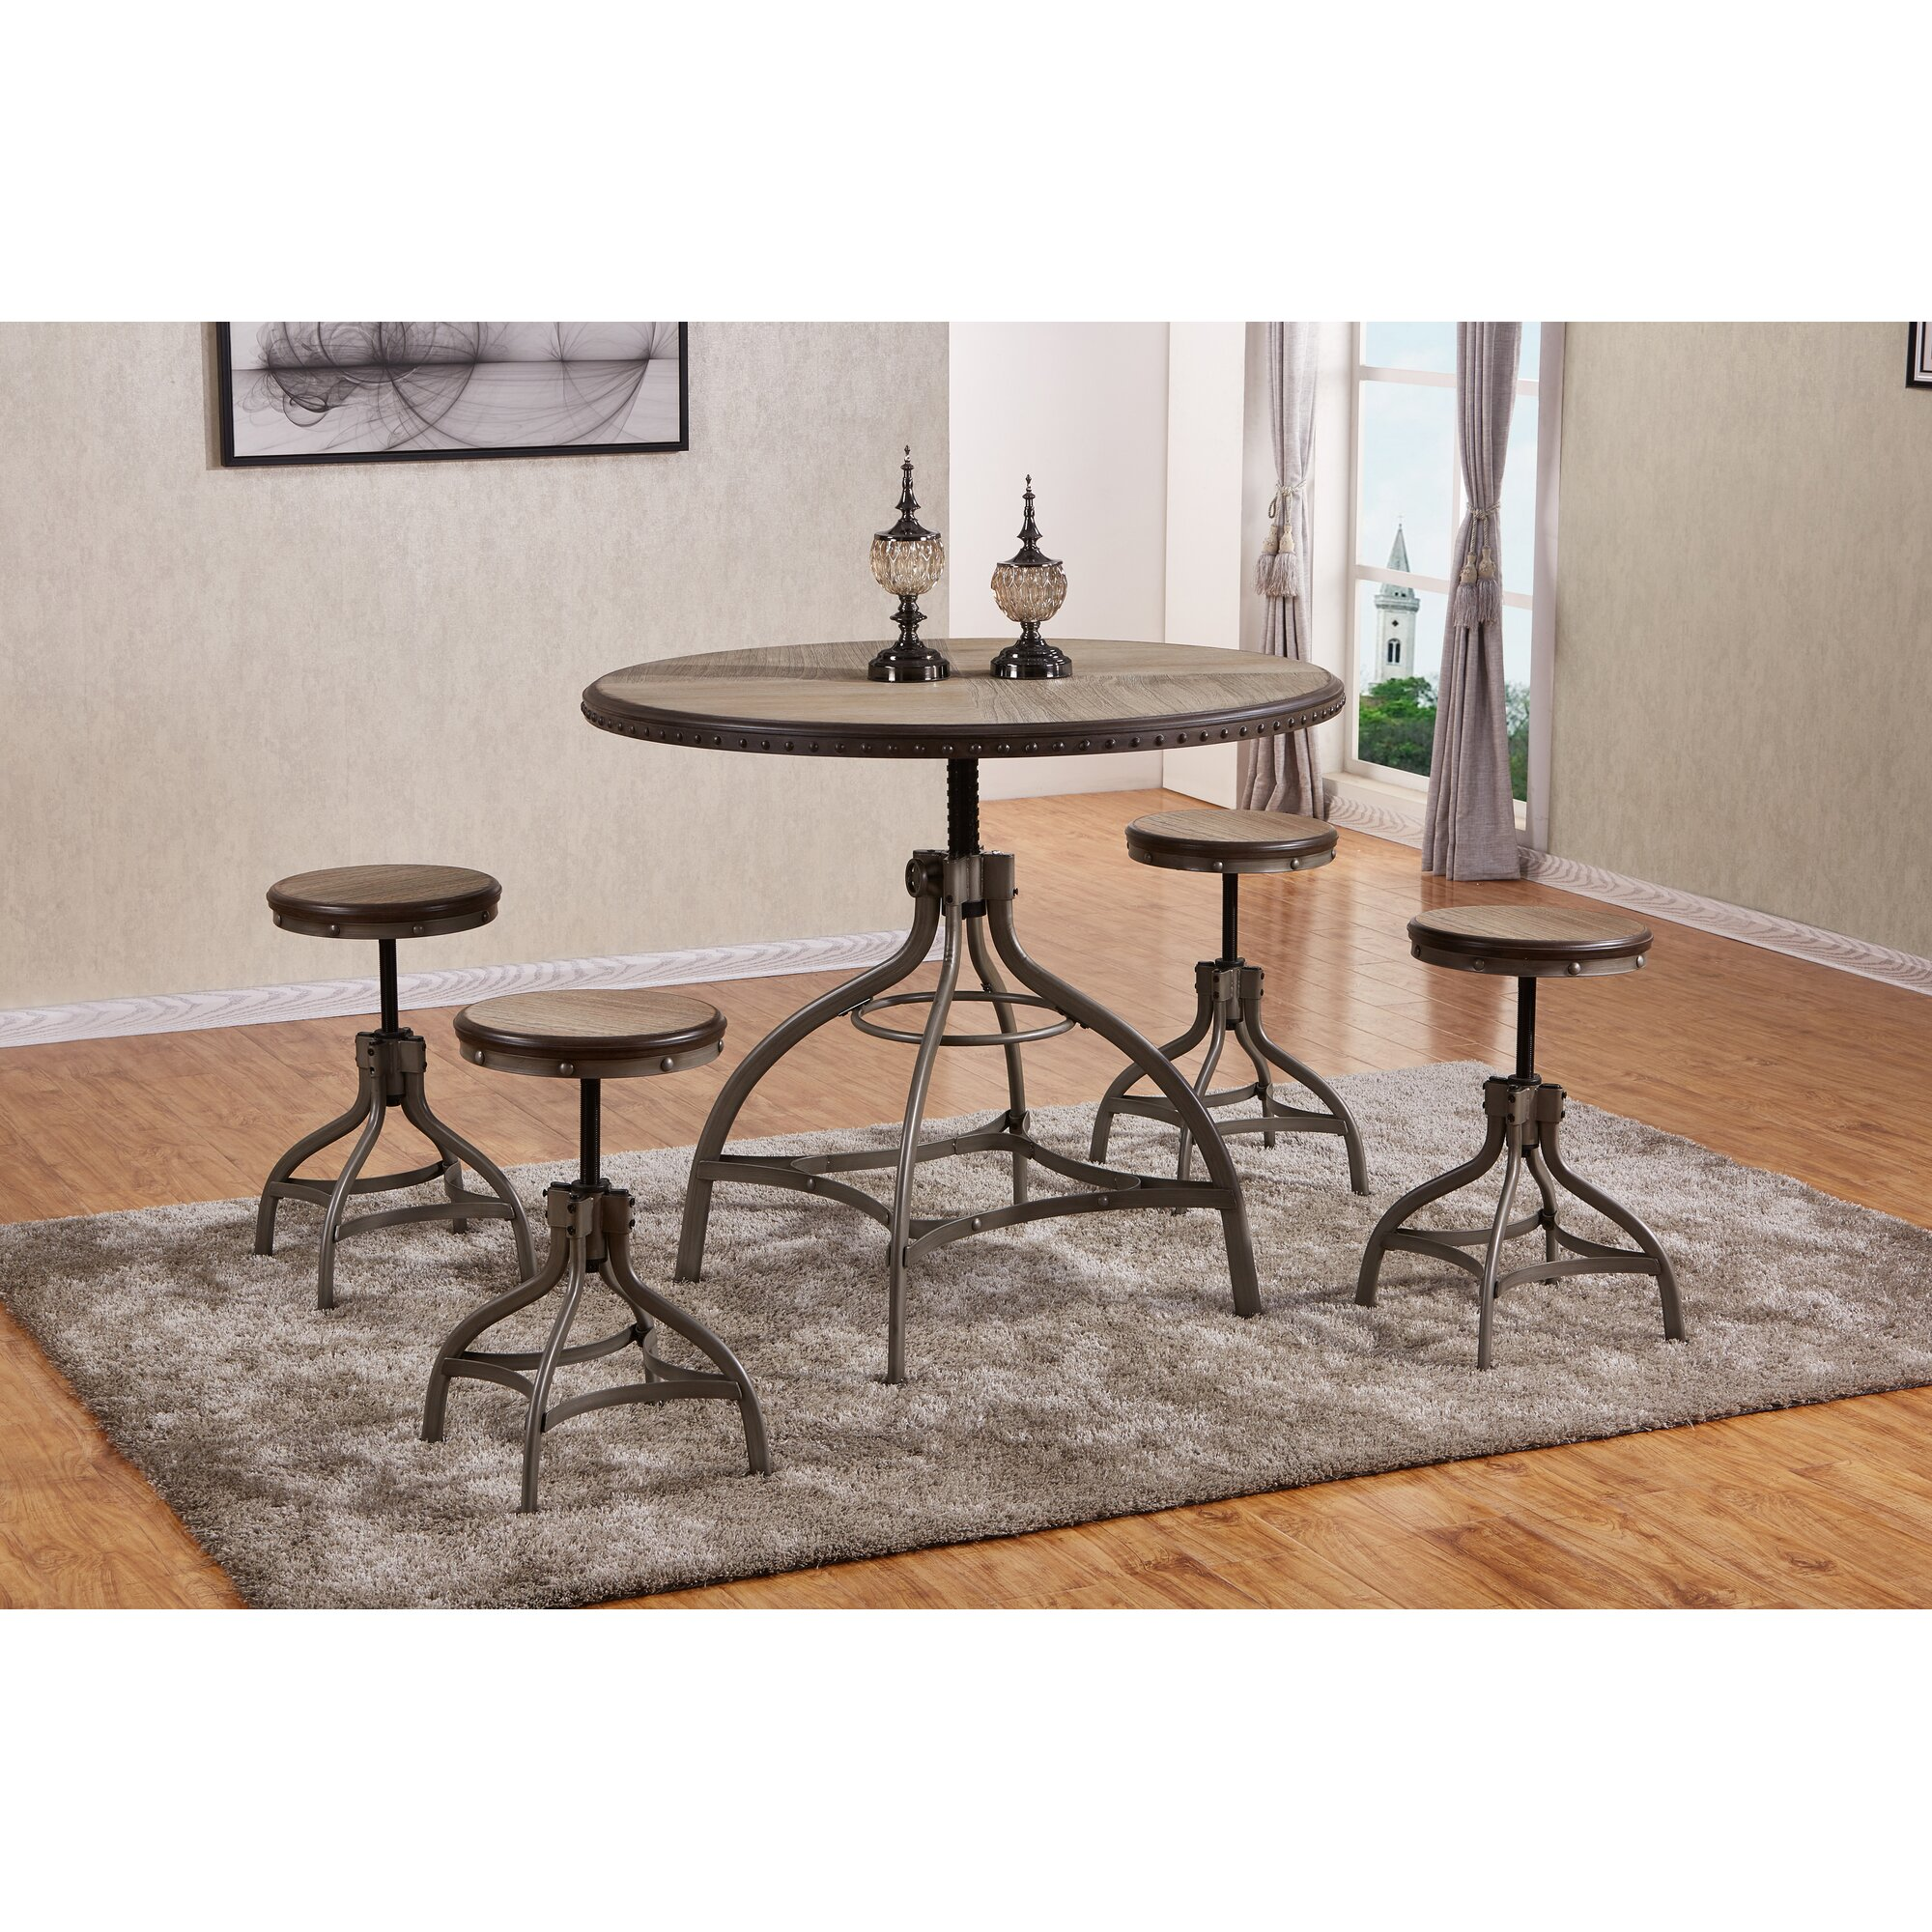 Best quality furniture adjustable bar stool reviews for Best quality furniture